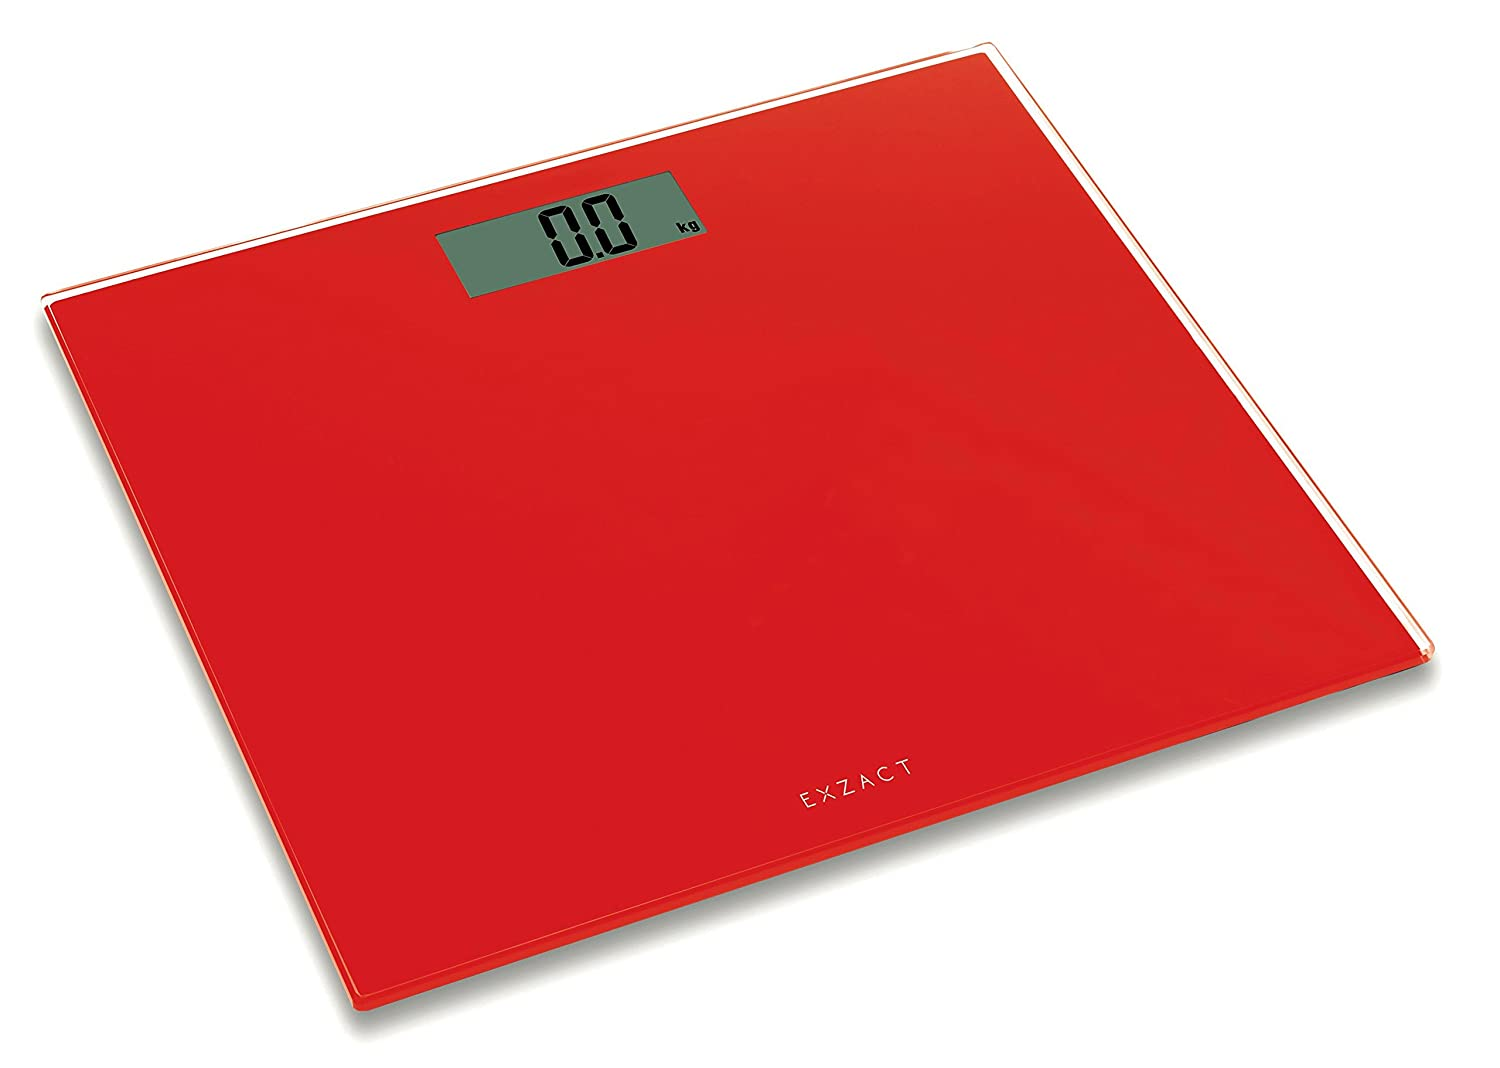 Exzact EX9360 ColorSlim – Digital Bathroom Scale/Electronic Weighing Scale - Ultra Slim 1.7 CM Thickness -150 kg / 330 lb - Color Glass Platform (Black) Exerz Limited